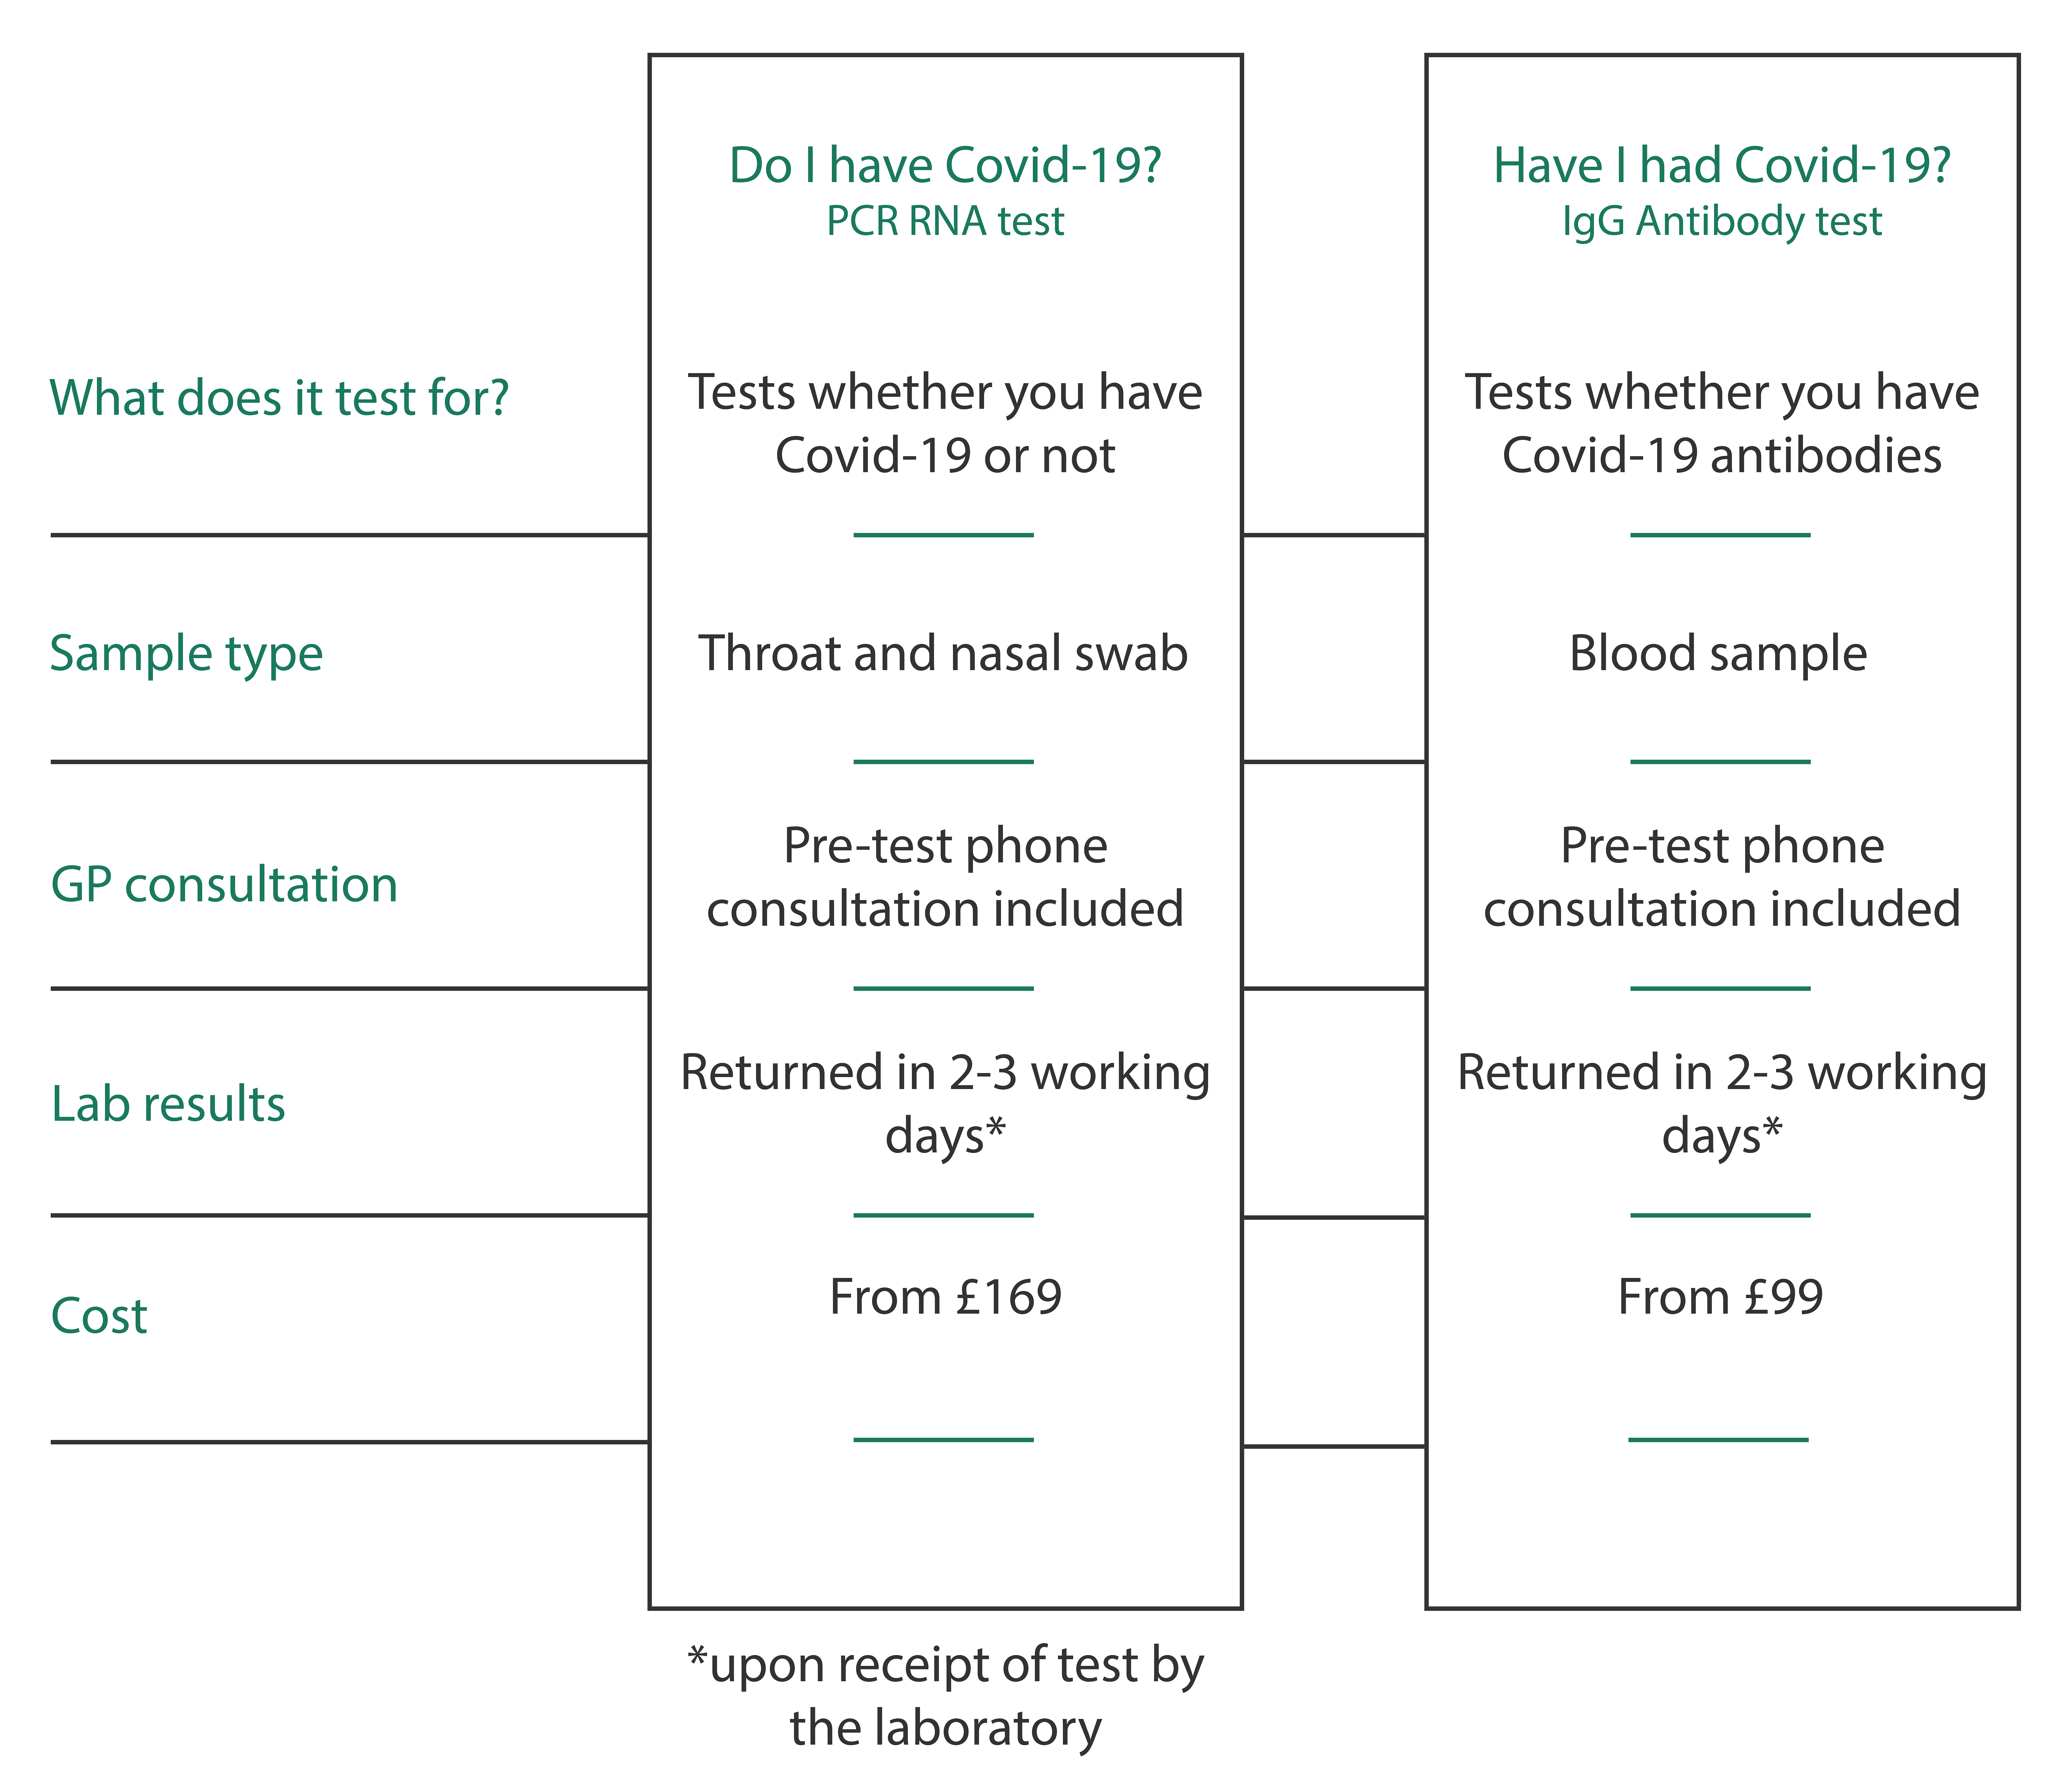 Covid-19 tests from Qured